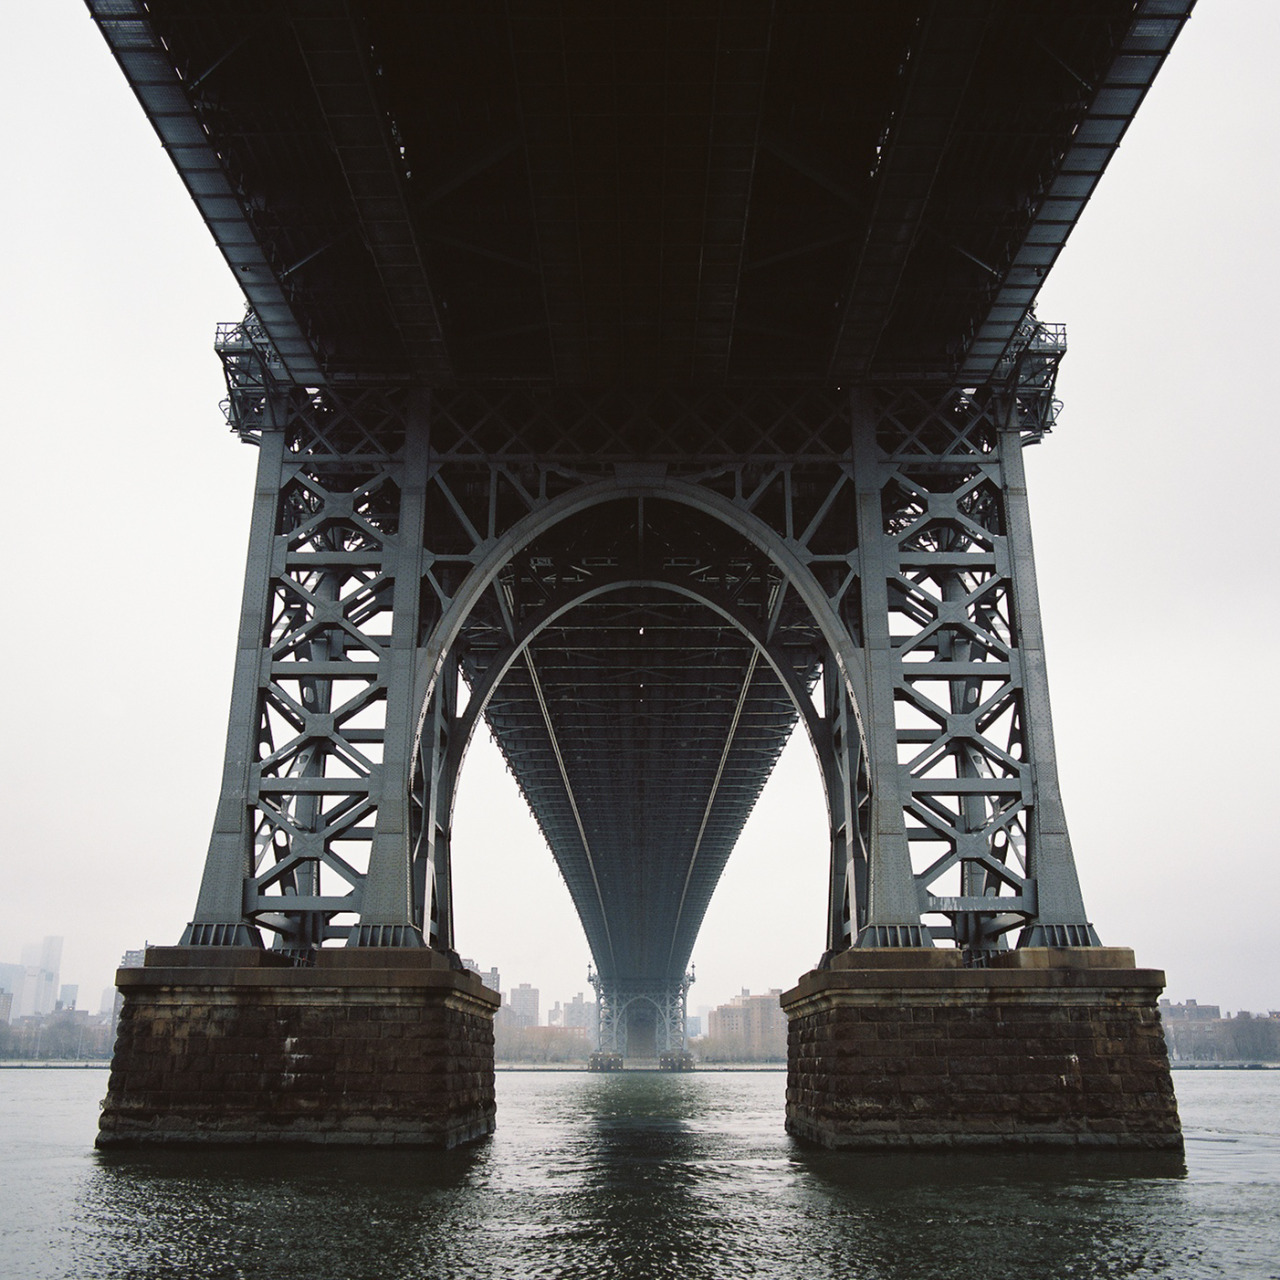 One of the first scans from my Hasselblad — Williamsburg Bridge, January 2013